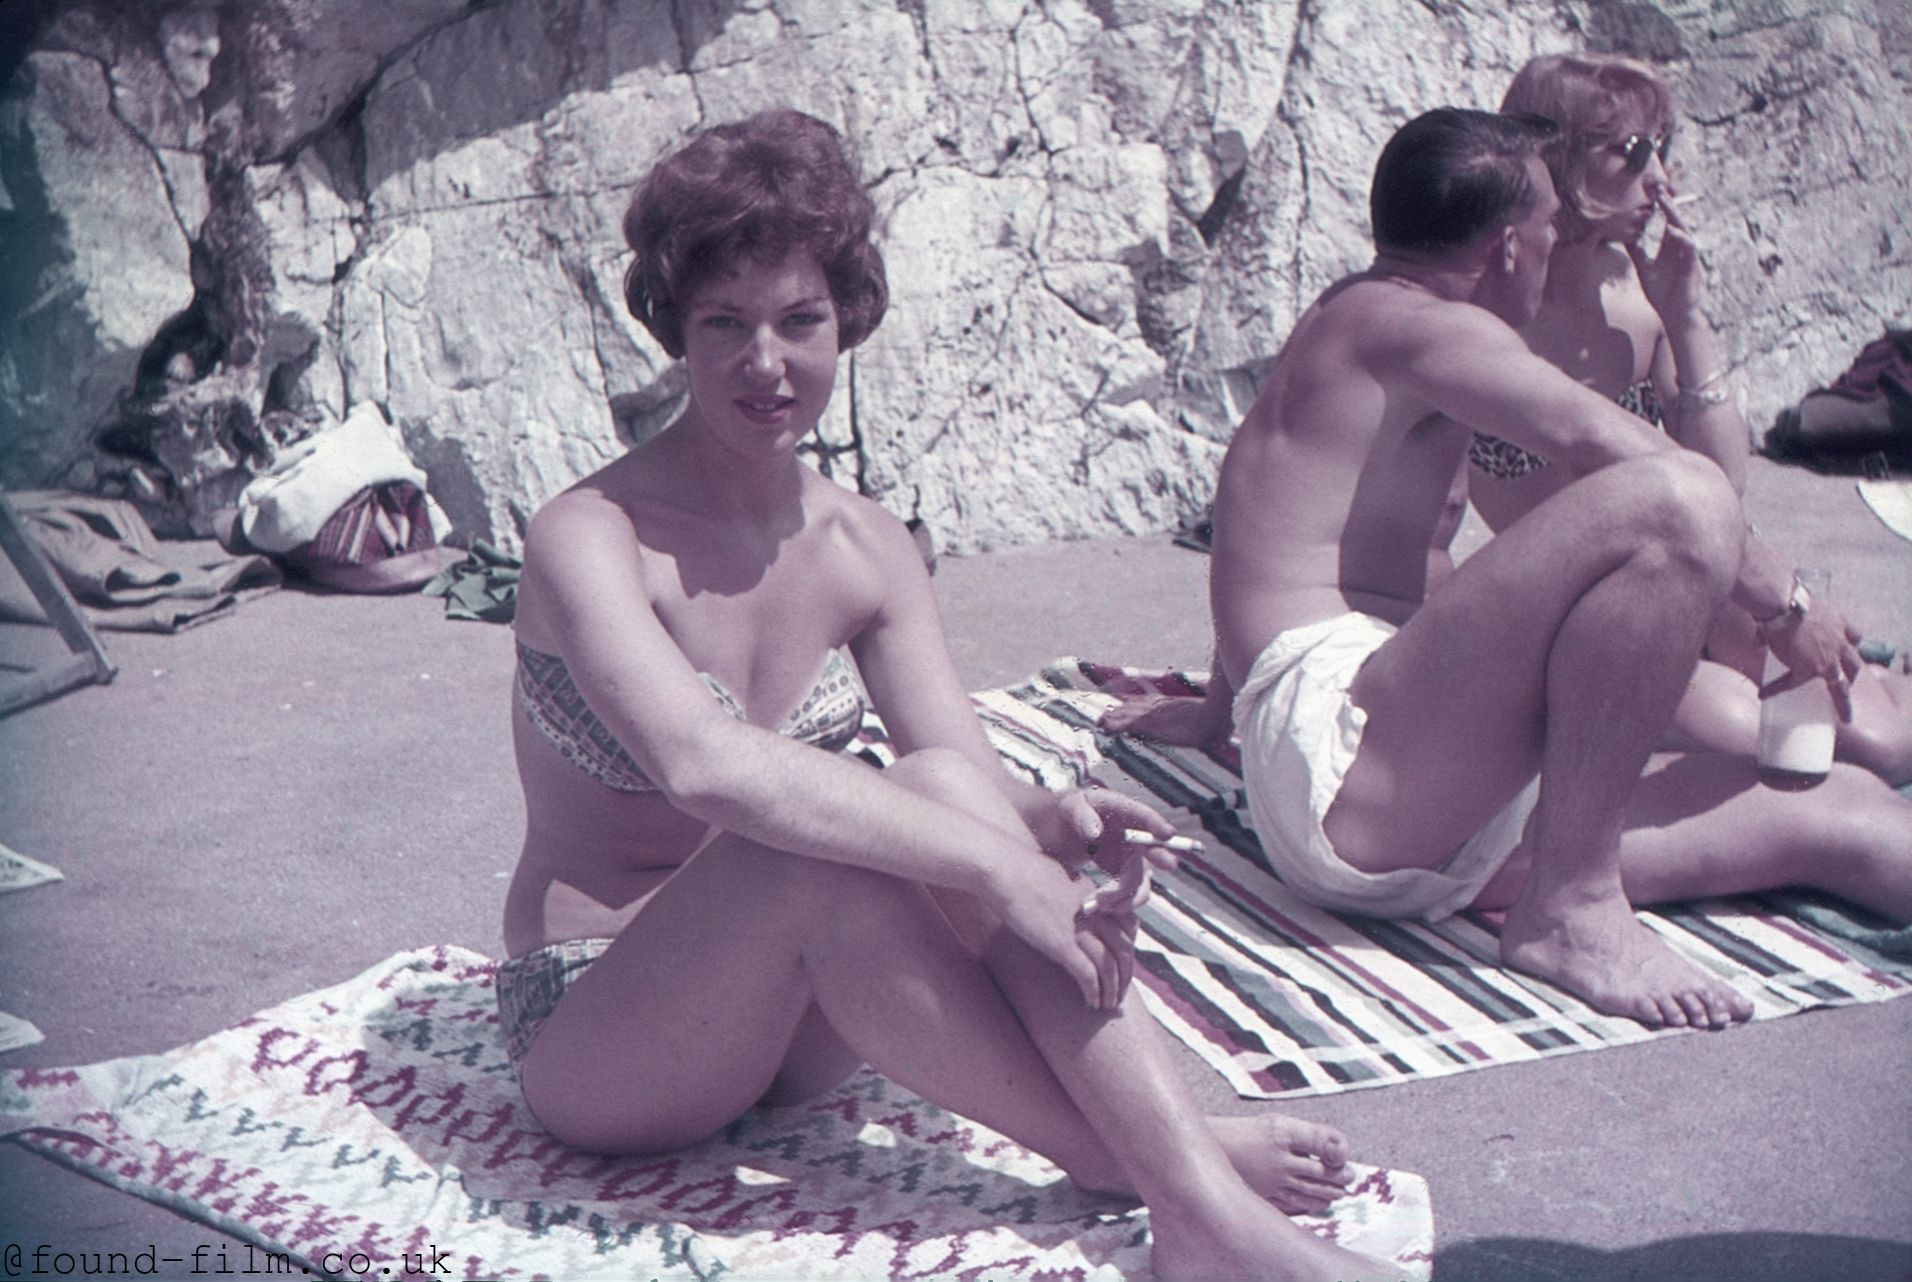 A Pretty girl sitting on a towel with a cigarette